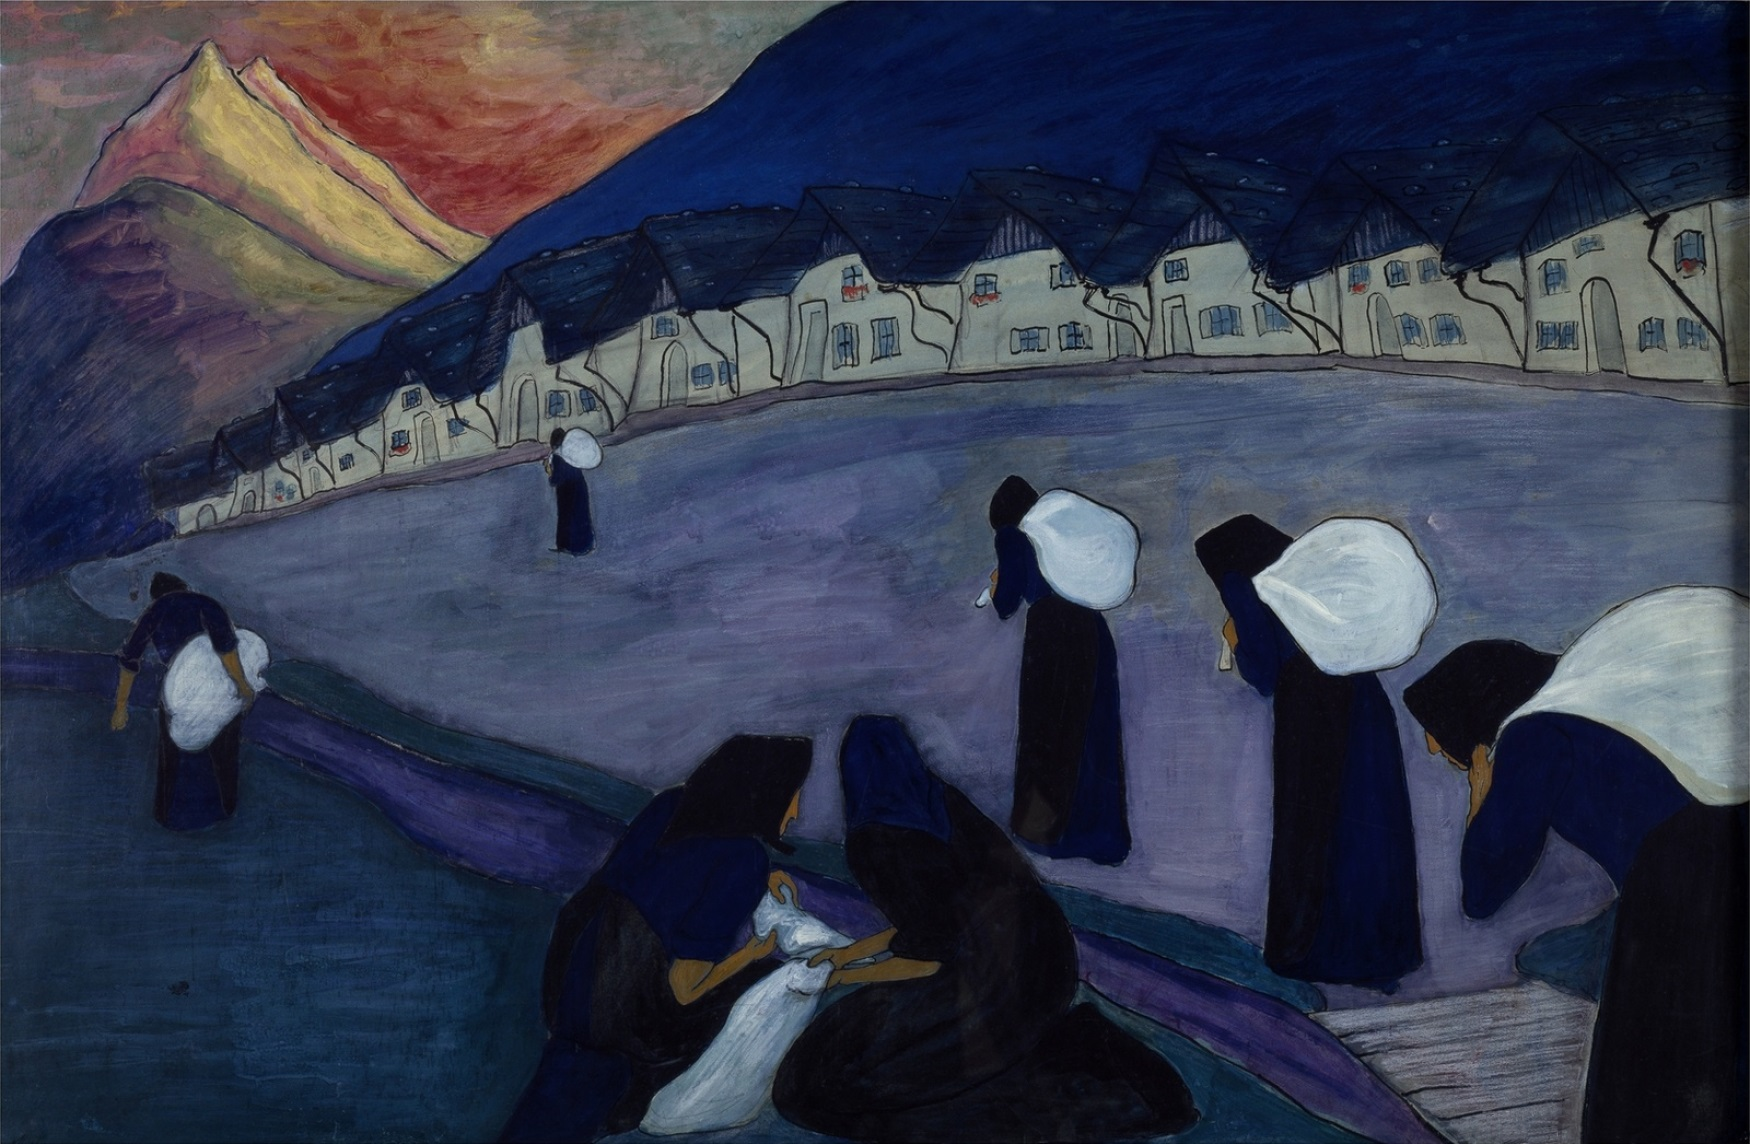 The Black Women, by Marianne Werefkin (1860-1938), gouache on cardboard, 1910